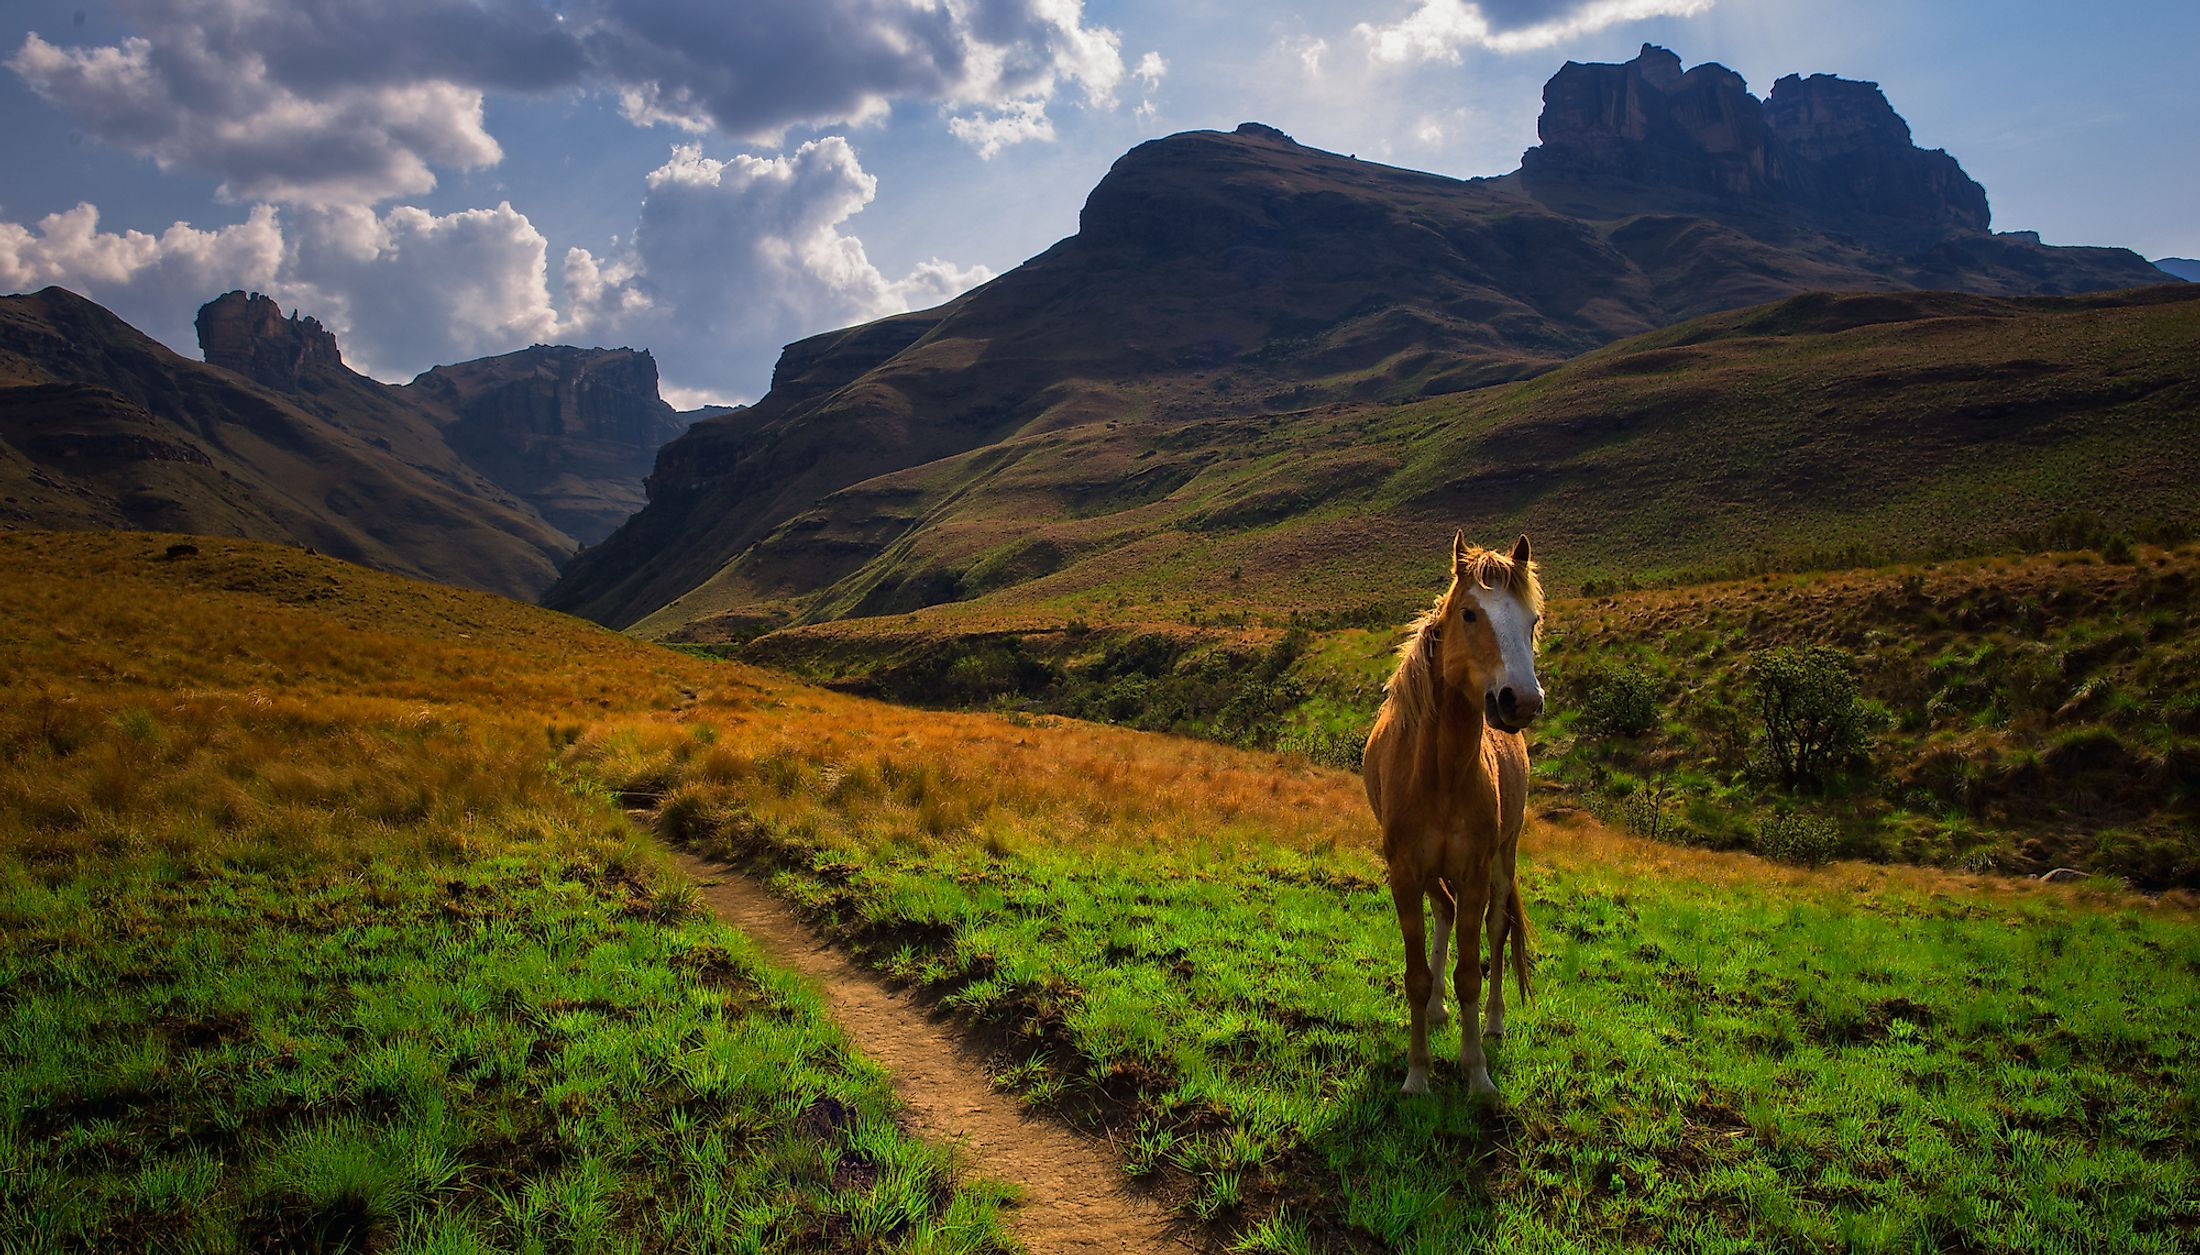 South Africa, Africa travel guide